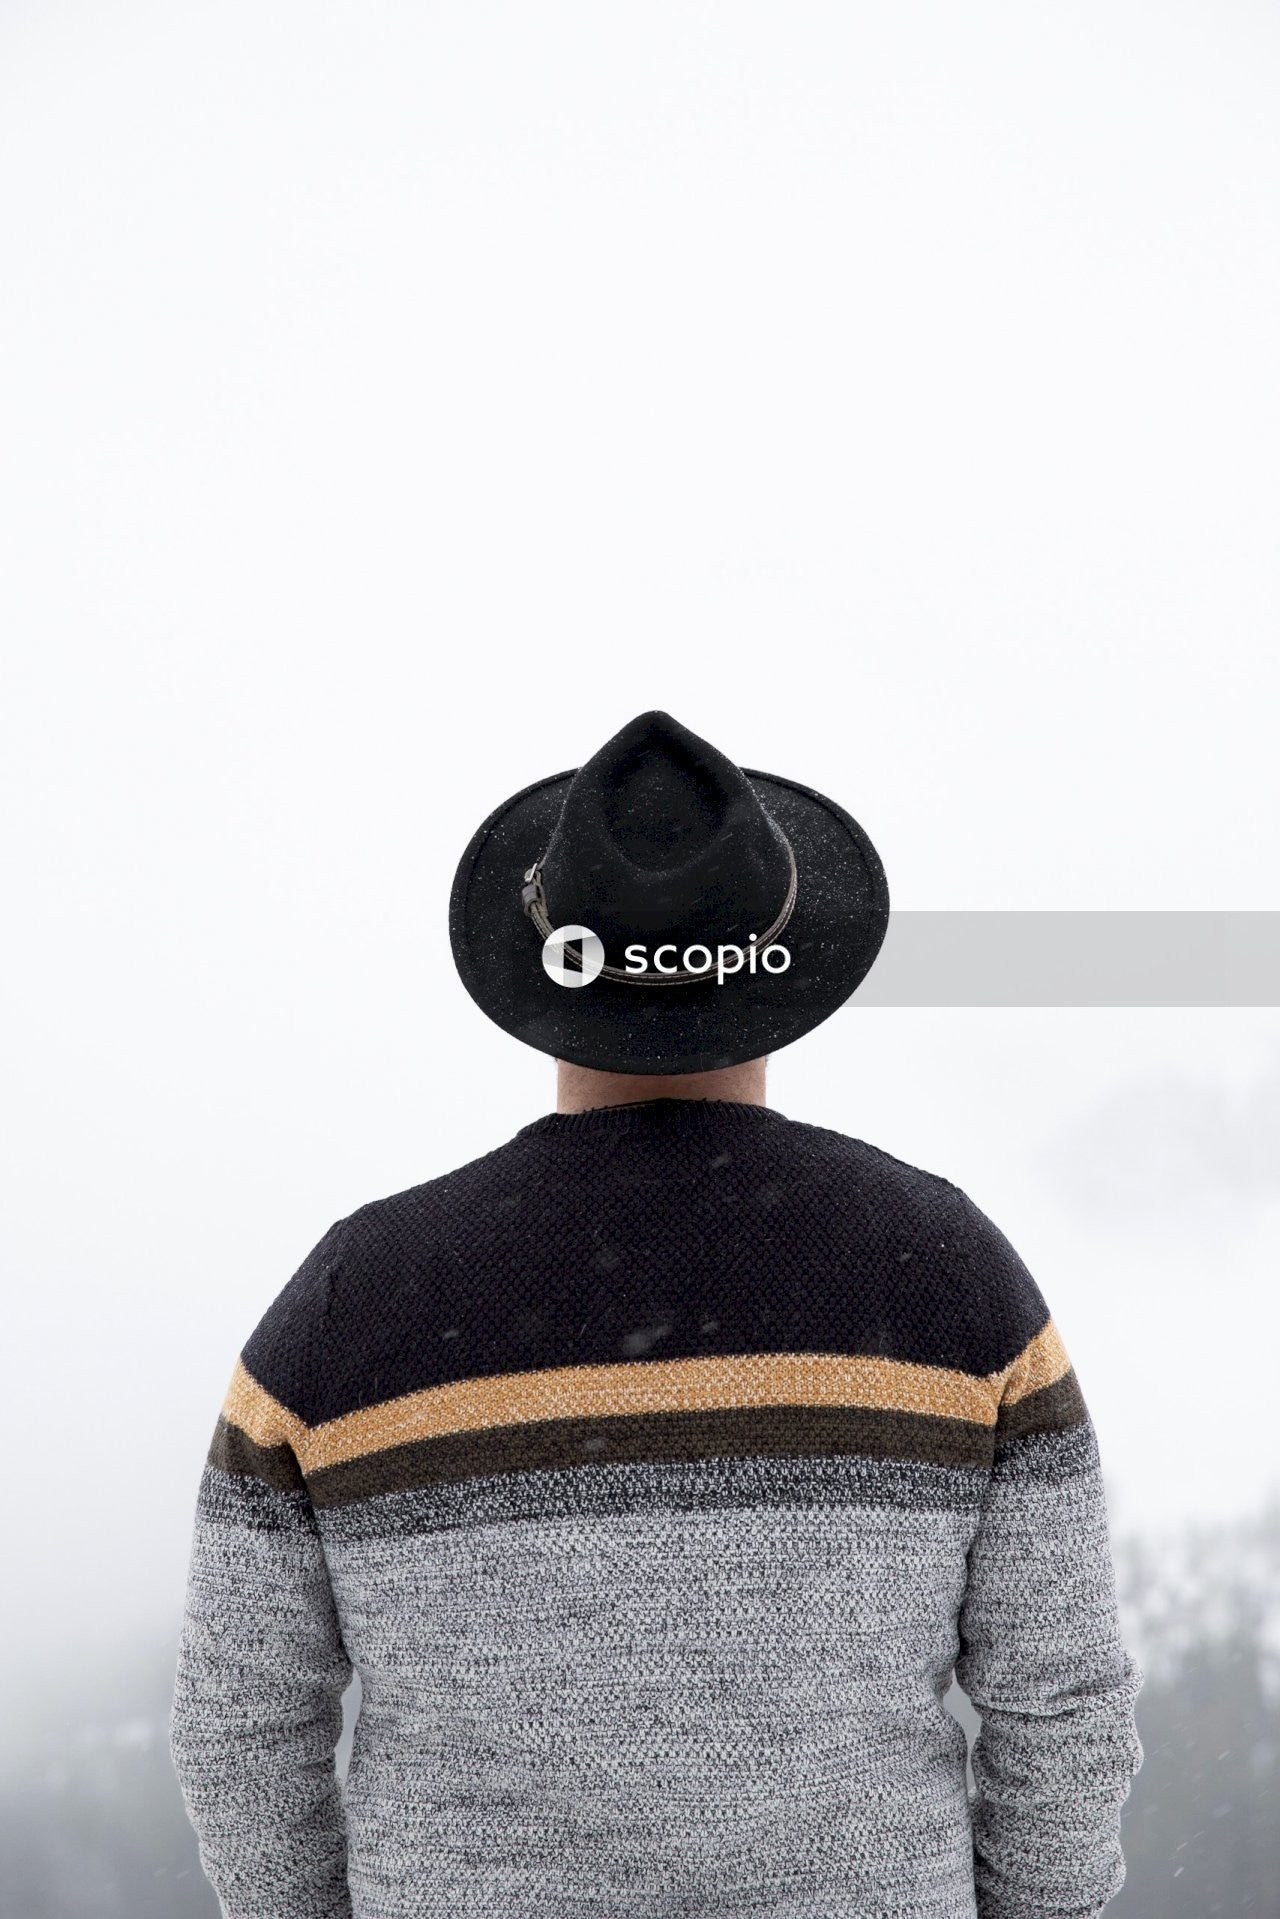 Person in black fedora hat